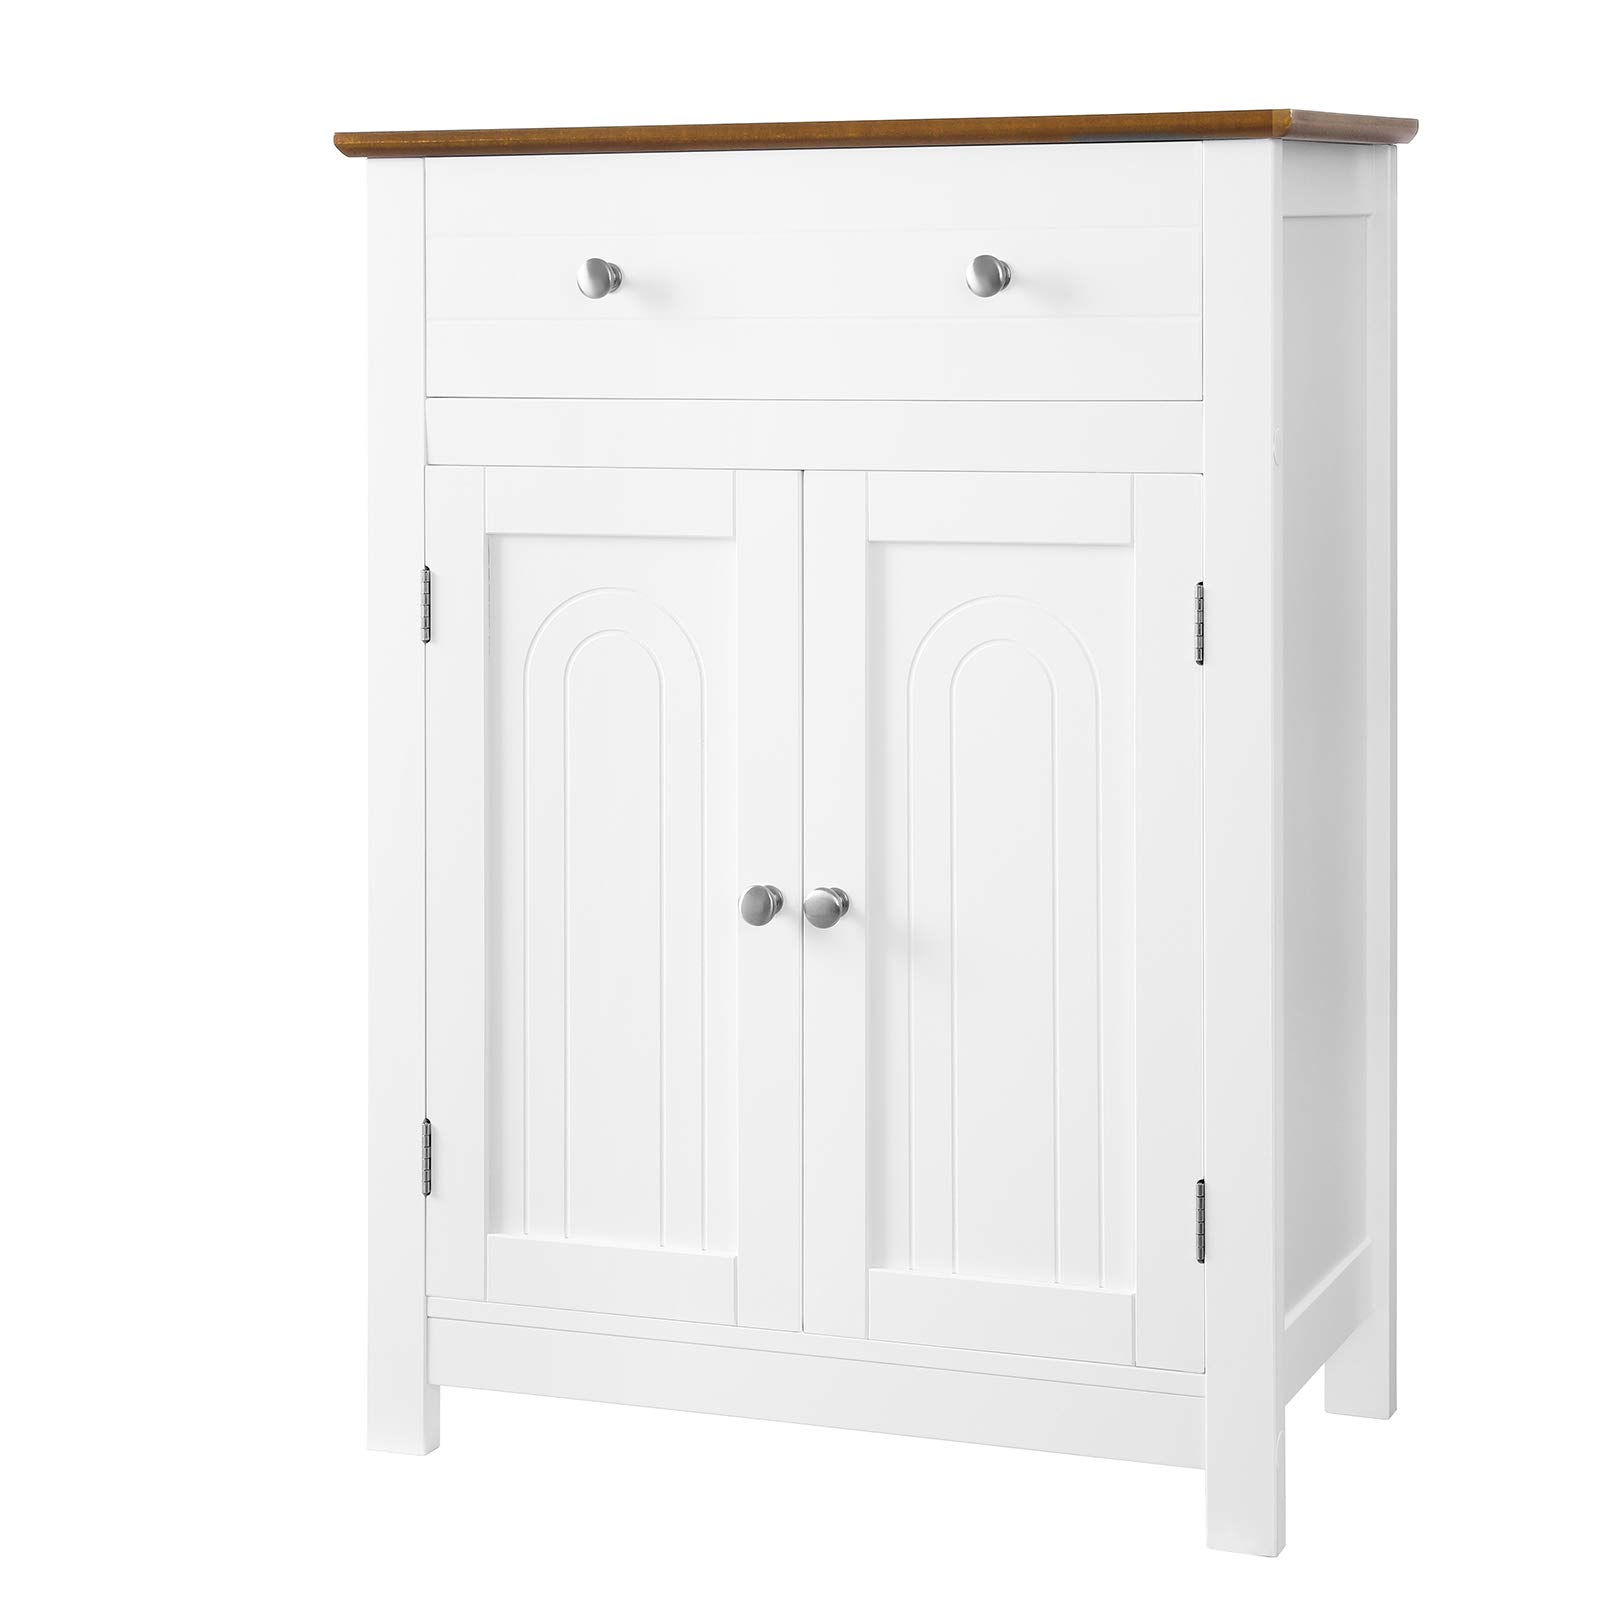 SONGMICS Free Standing Bathroom Cabinet with Large Drawer and Adjustable Shelf, Kitchen Cupboard, Country Style, Wooden Entryway Storage Cabinet, 23.6''L x 11.8''W x 31.5''H, White & Brown, UBBC62WT